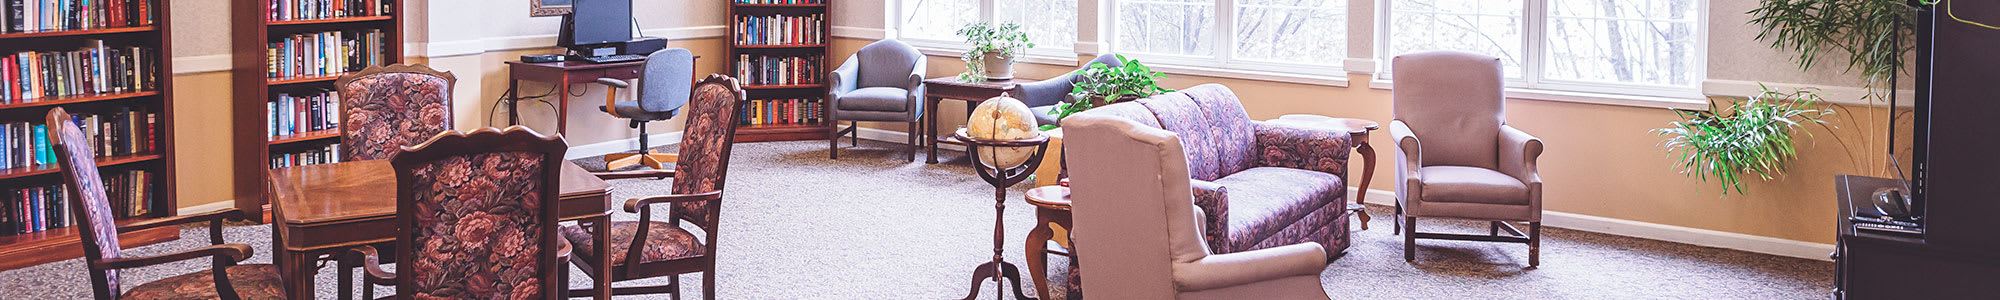 services offered by Broadmore Senior Living at Lakemont Farms